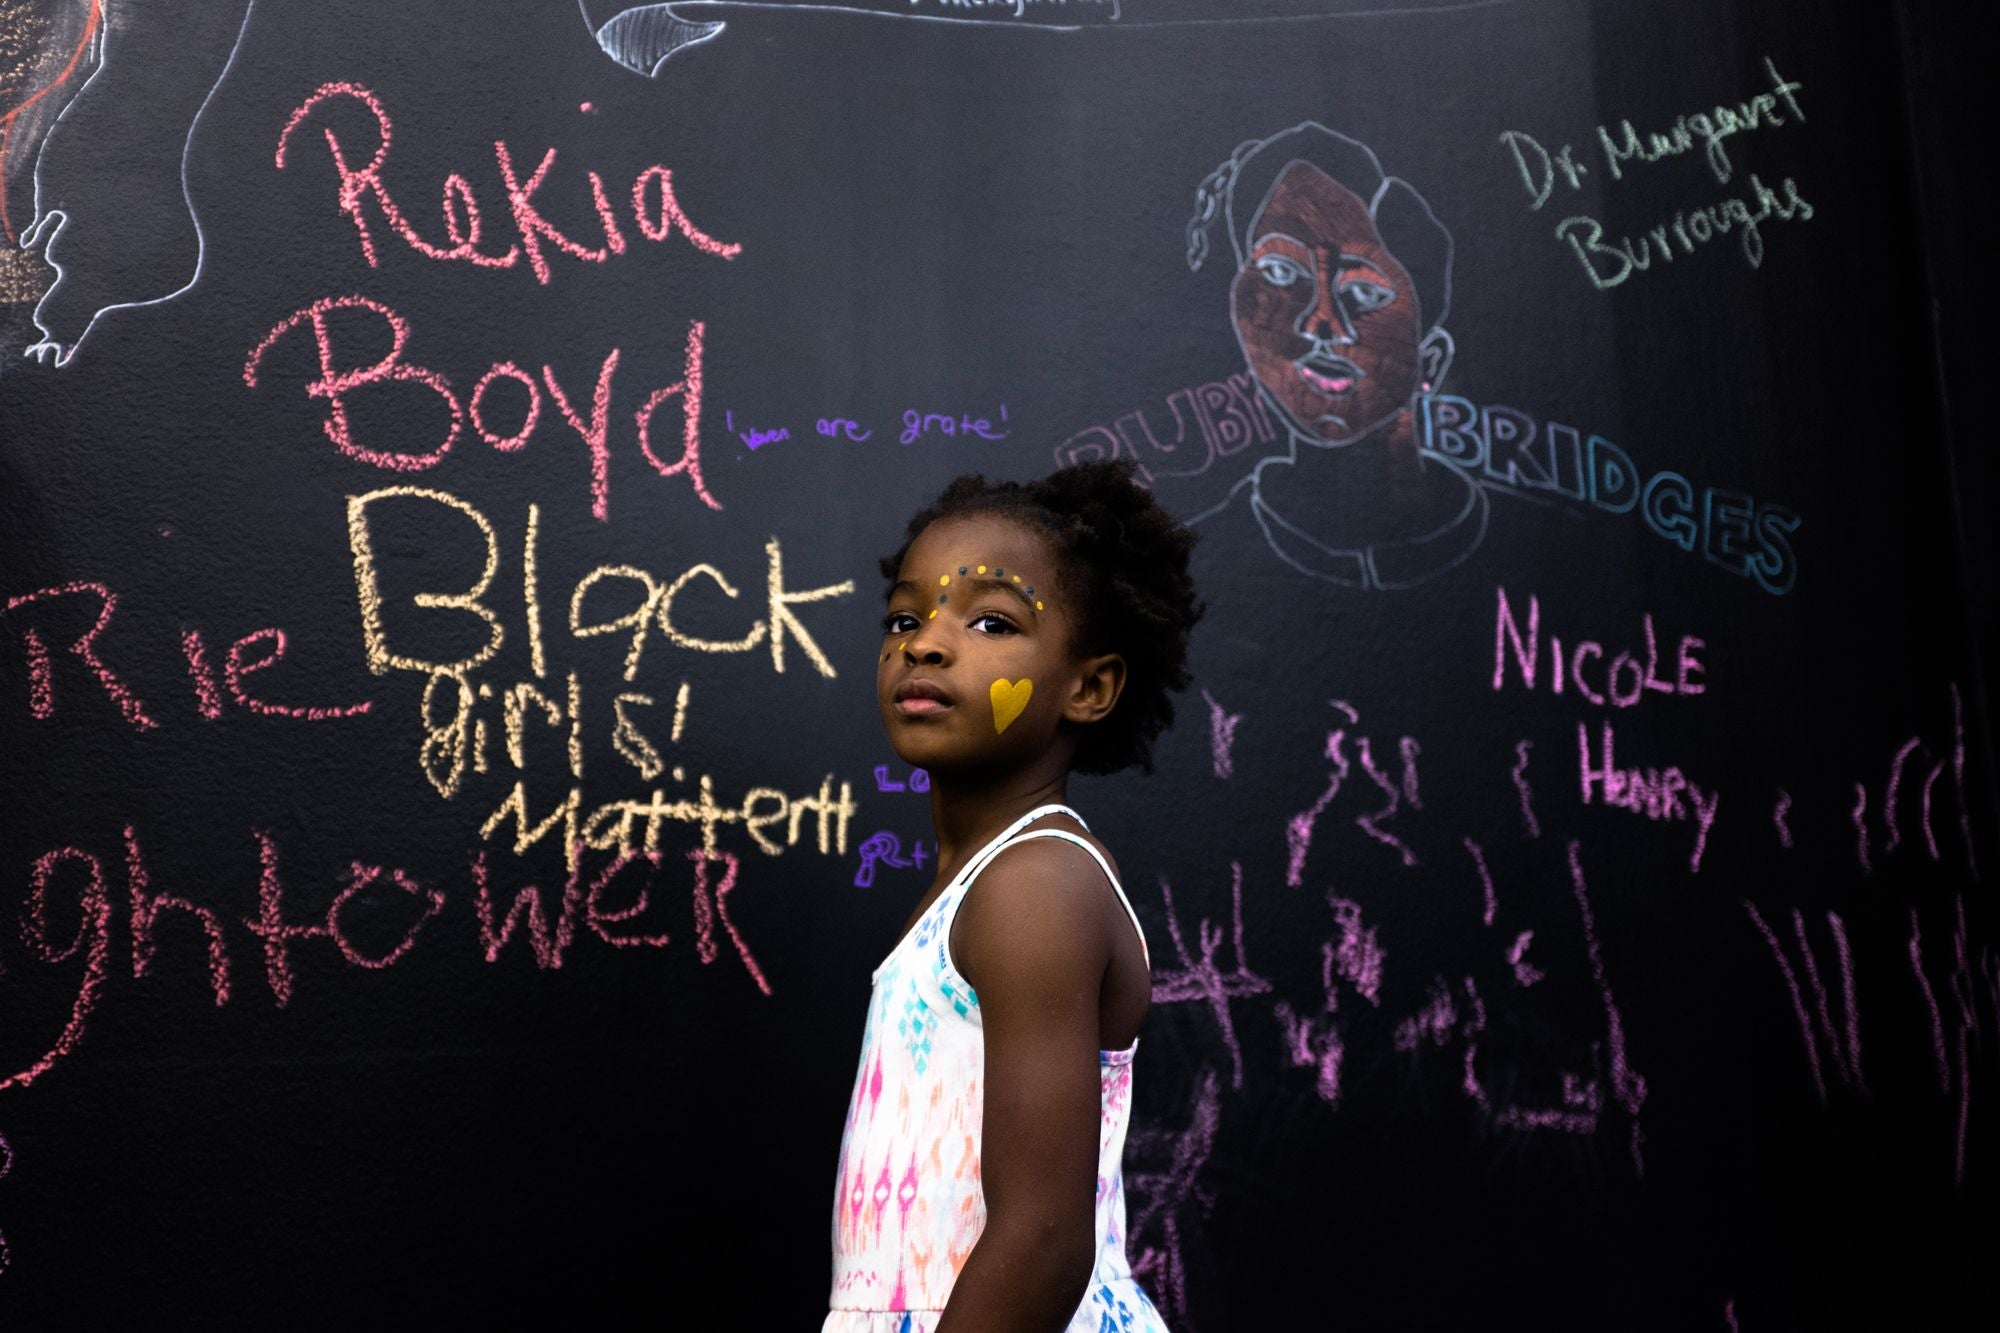 1 Billion 4 Black Girls, Invest in Black girls.